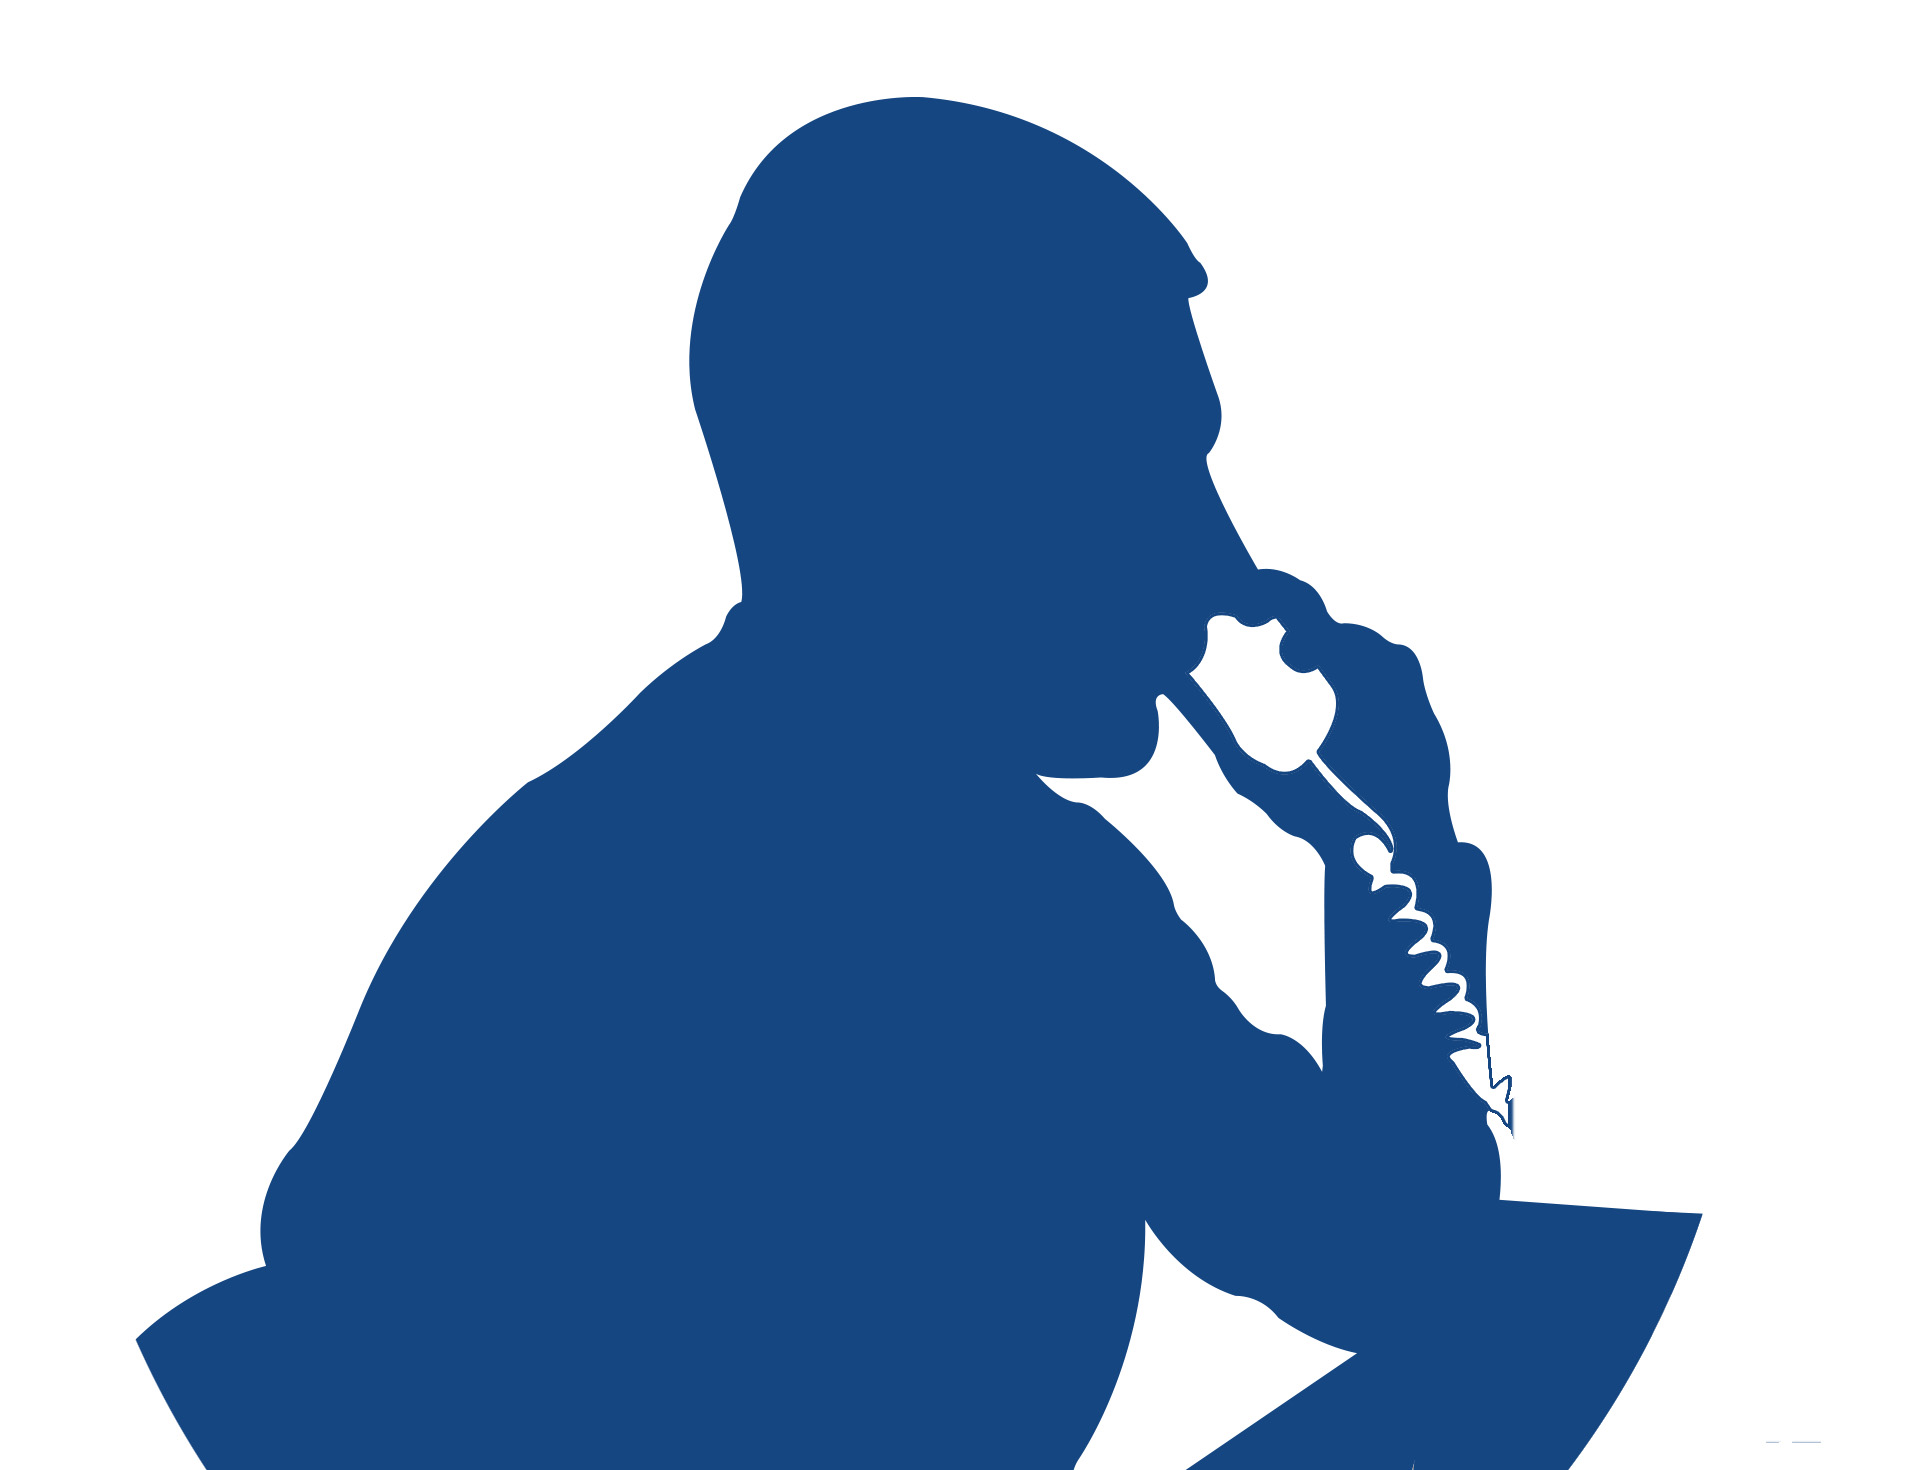 An illustrations of a man on the phone.